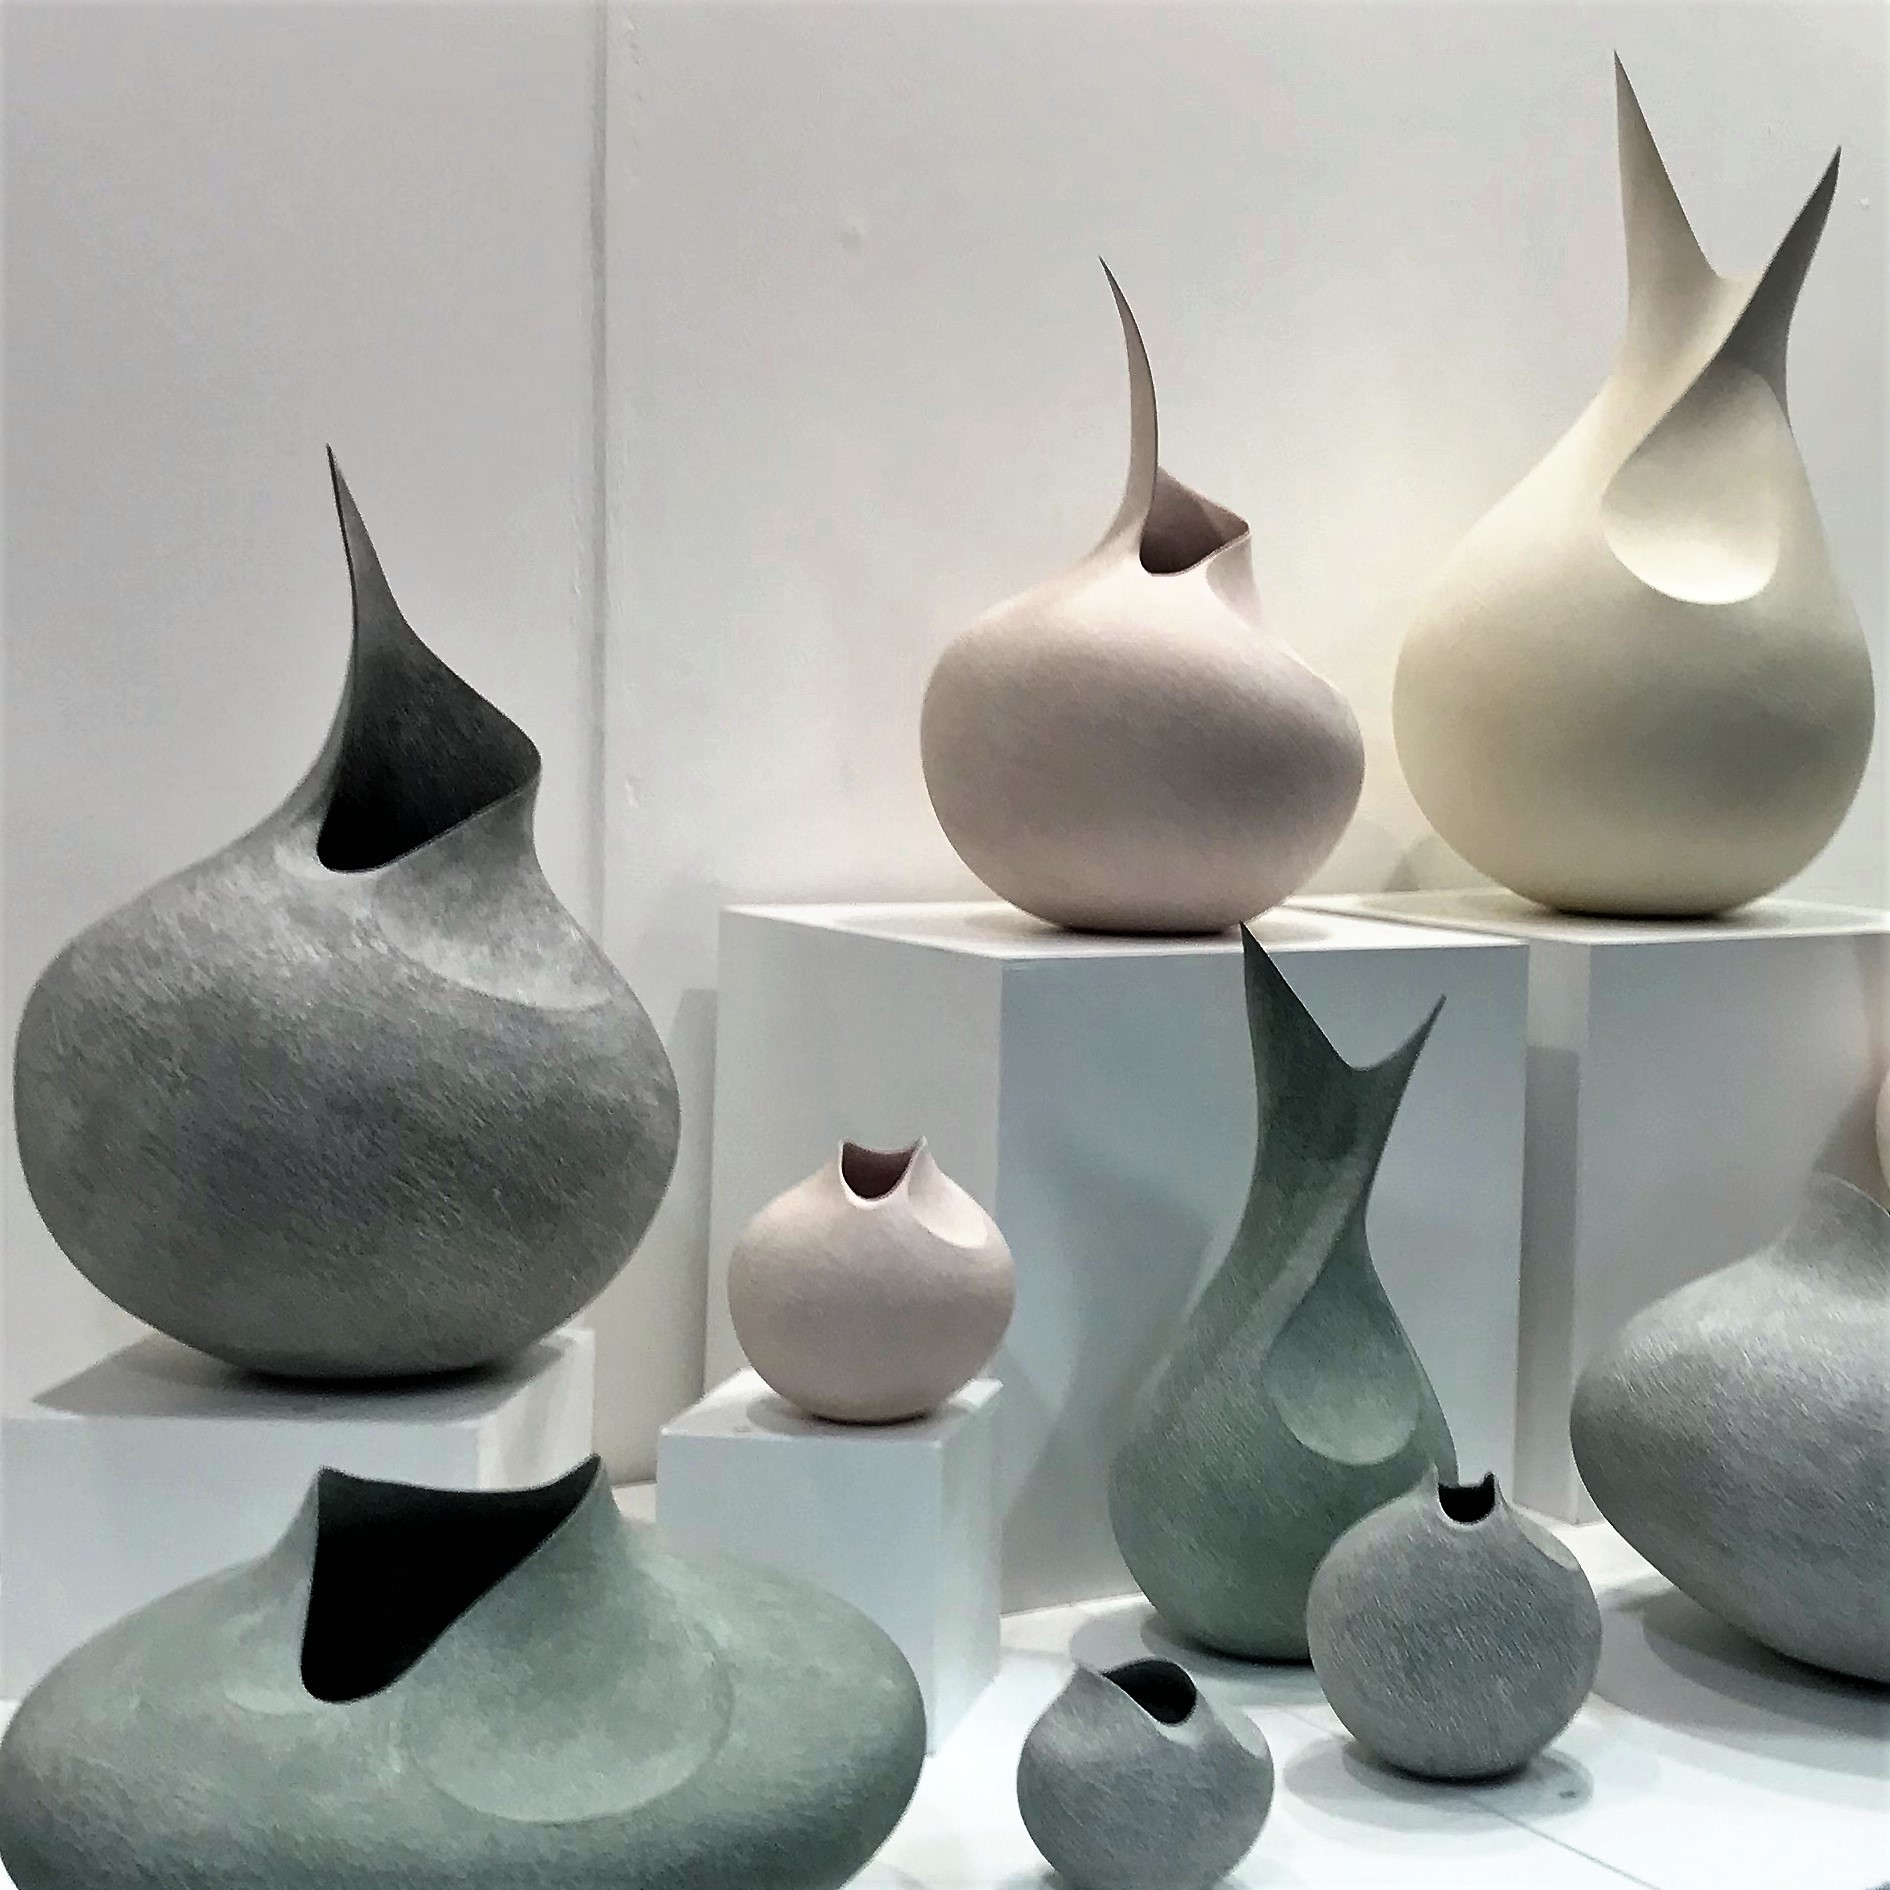 Mitch Pilkington @mitchceramics